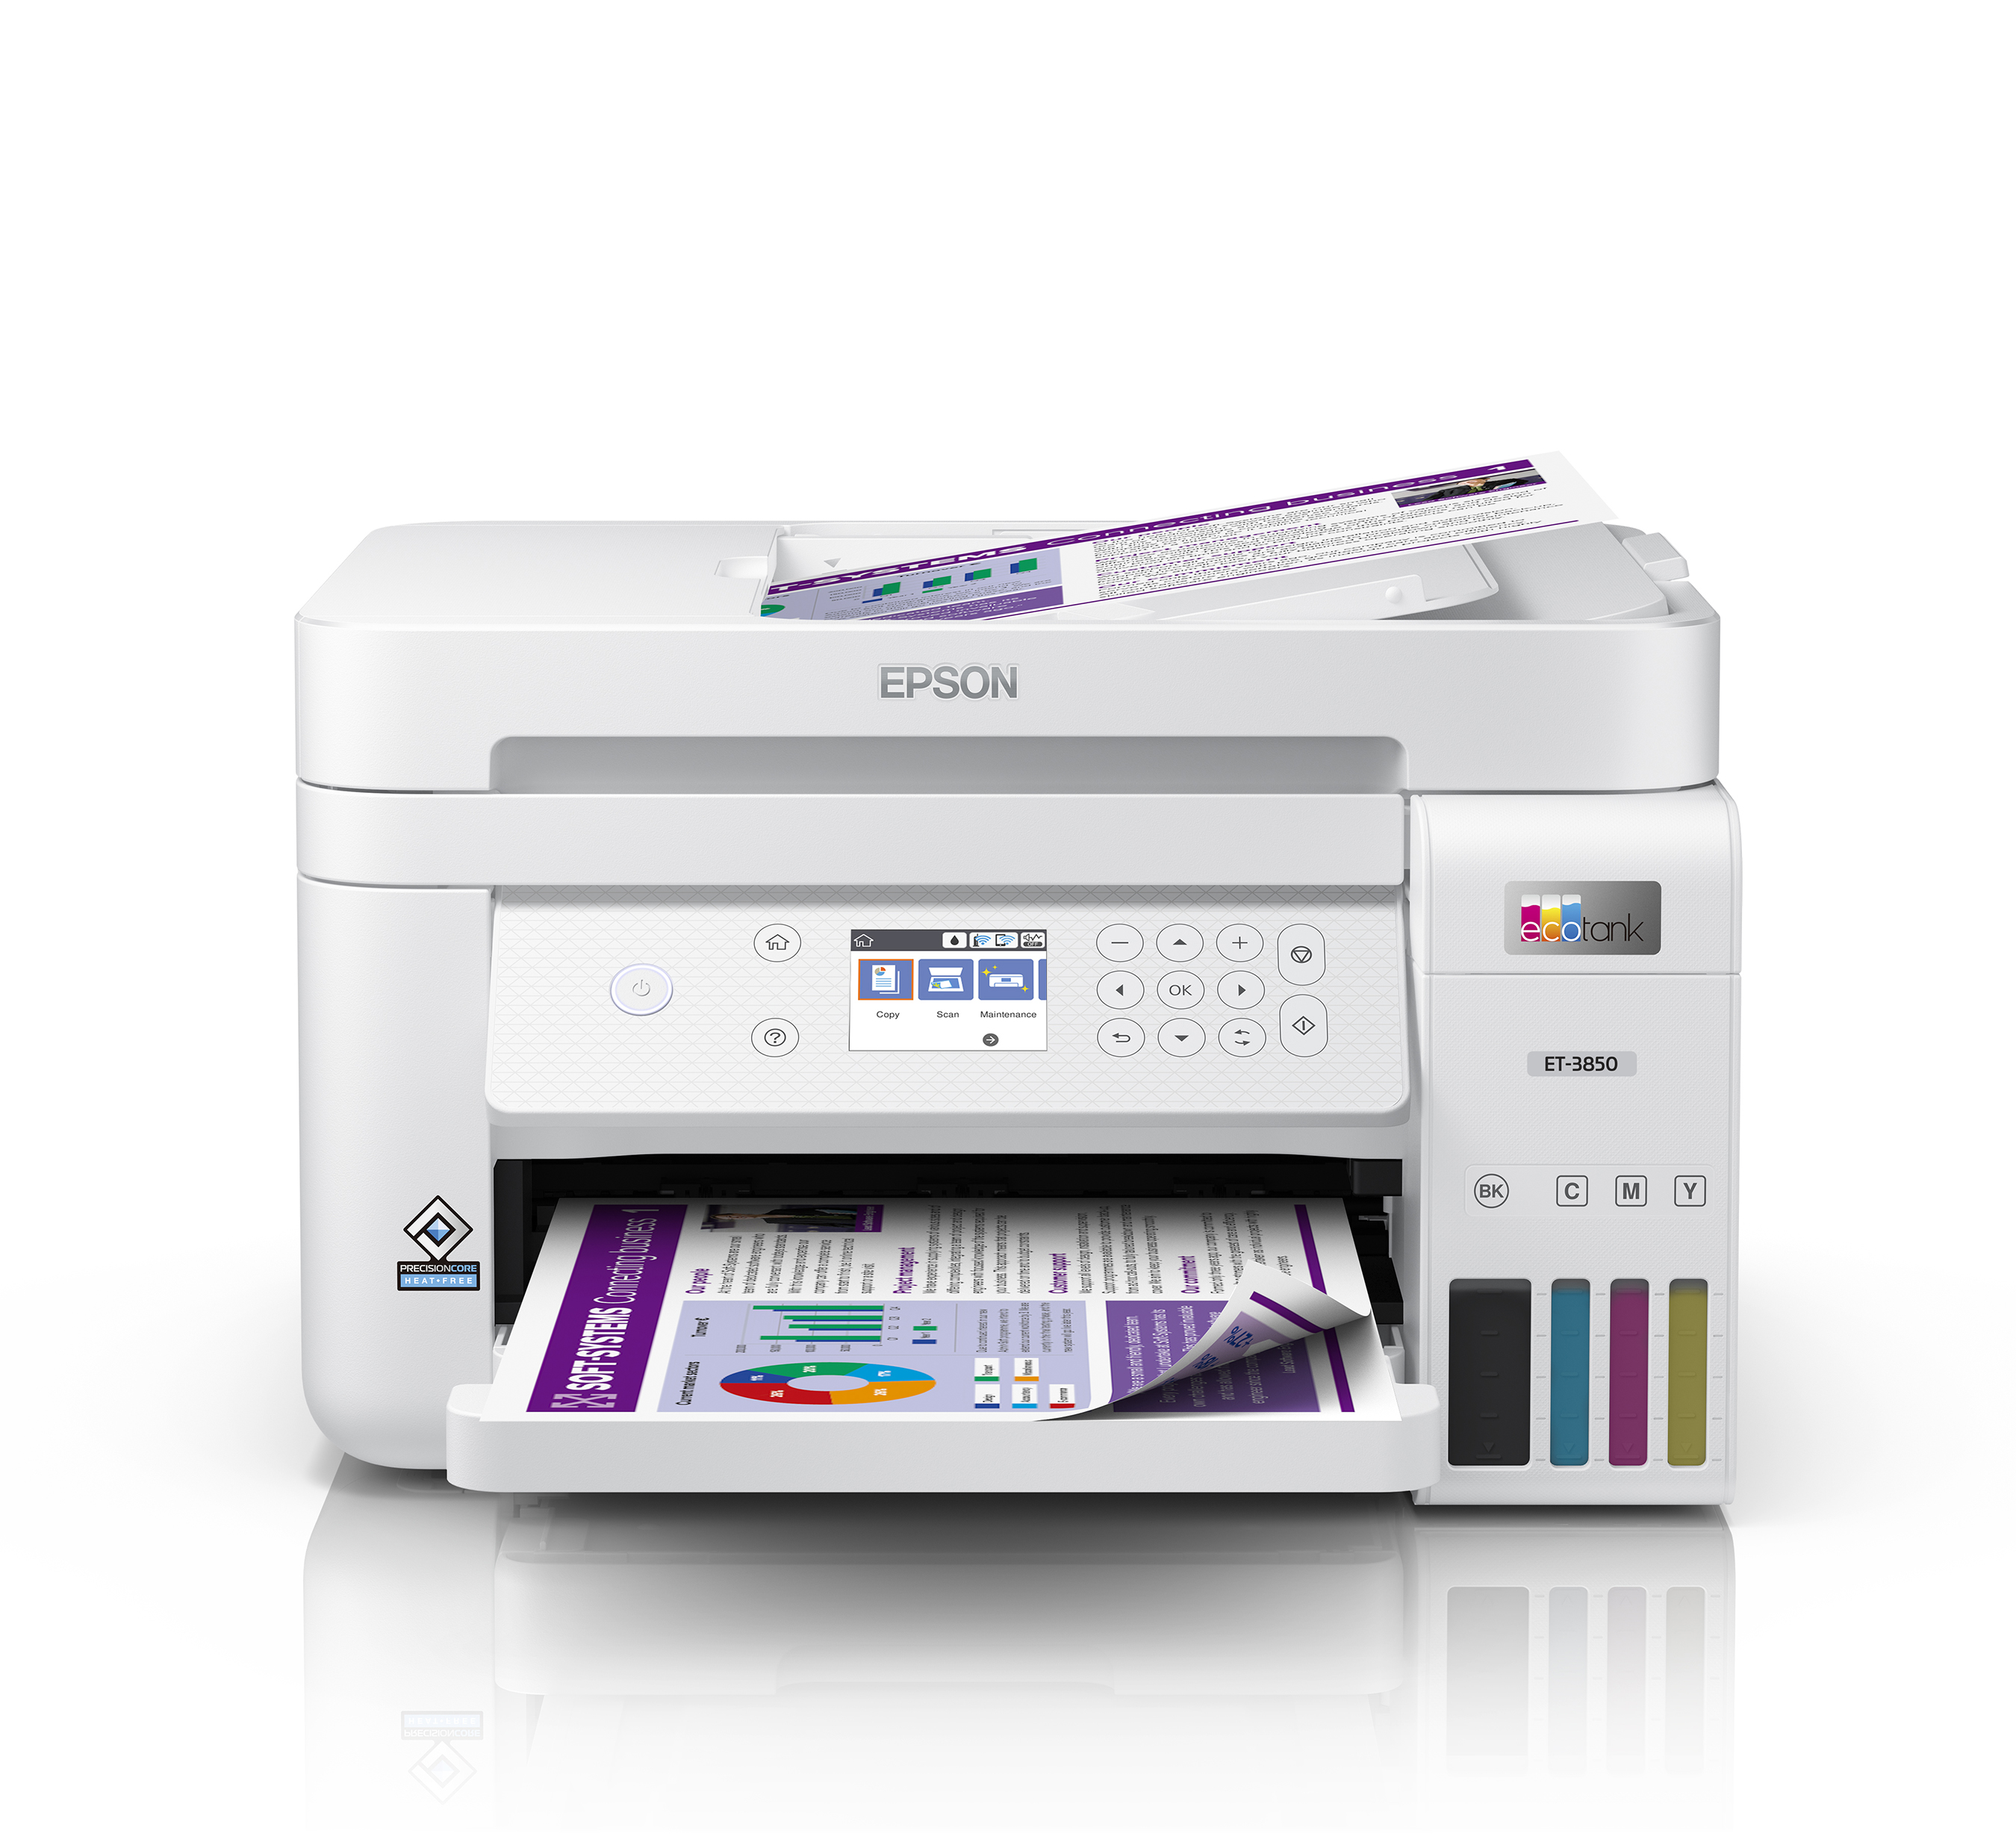 The EcoTank ET-3850 features an ADF and fast printing with outstanding print quality, productive paper handling, a high-resolution flatbed scanner, and a large color display, making it an ideal printing solution for the home office.